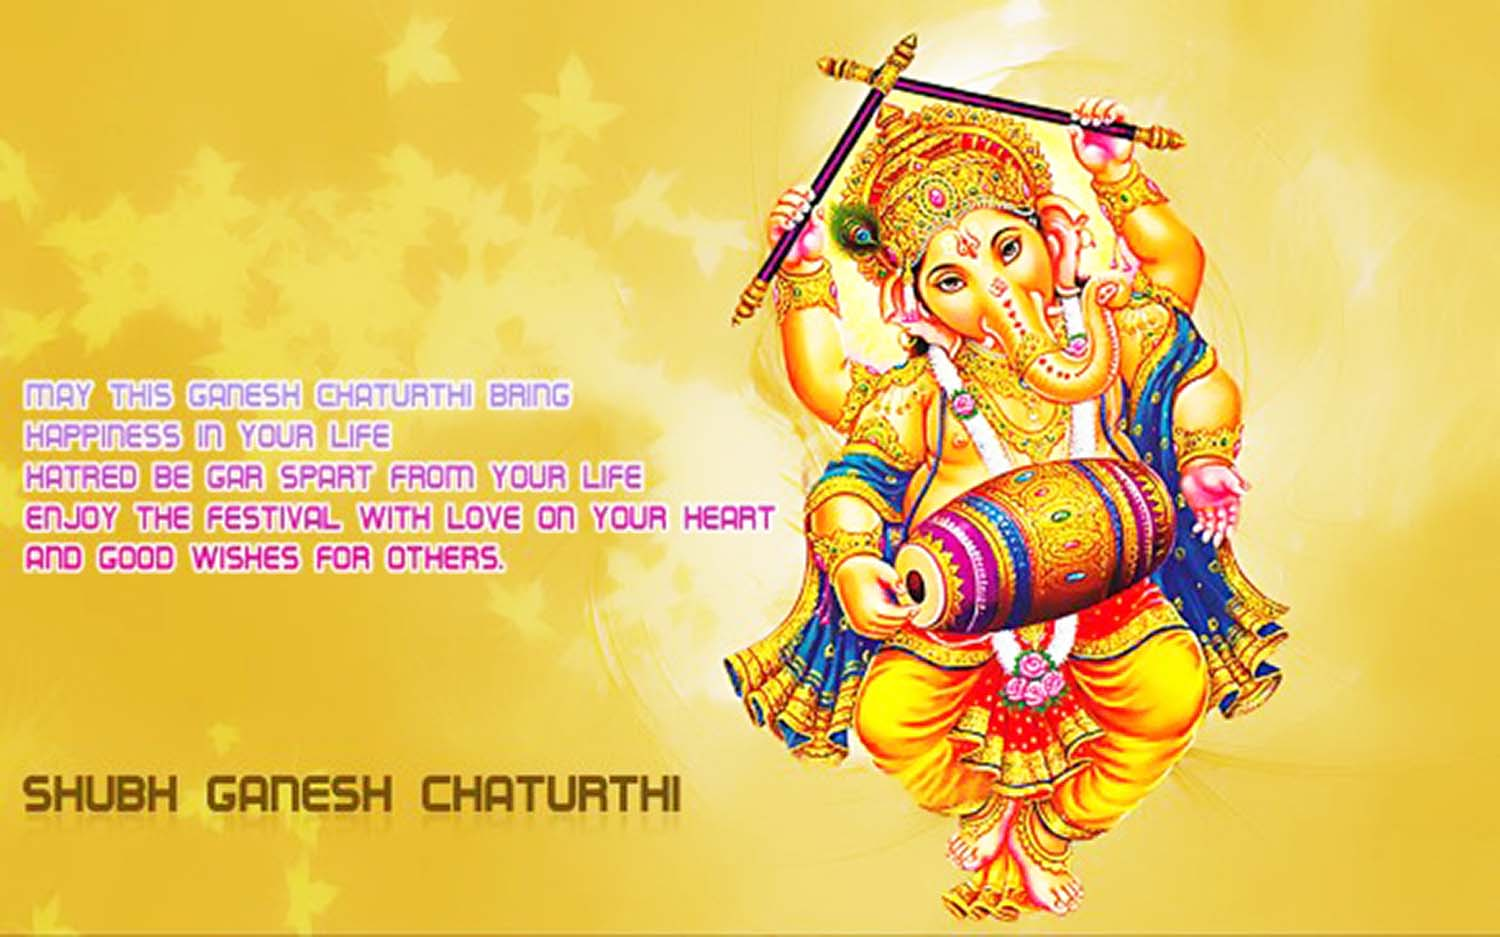 sankashti chaturthi wish